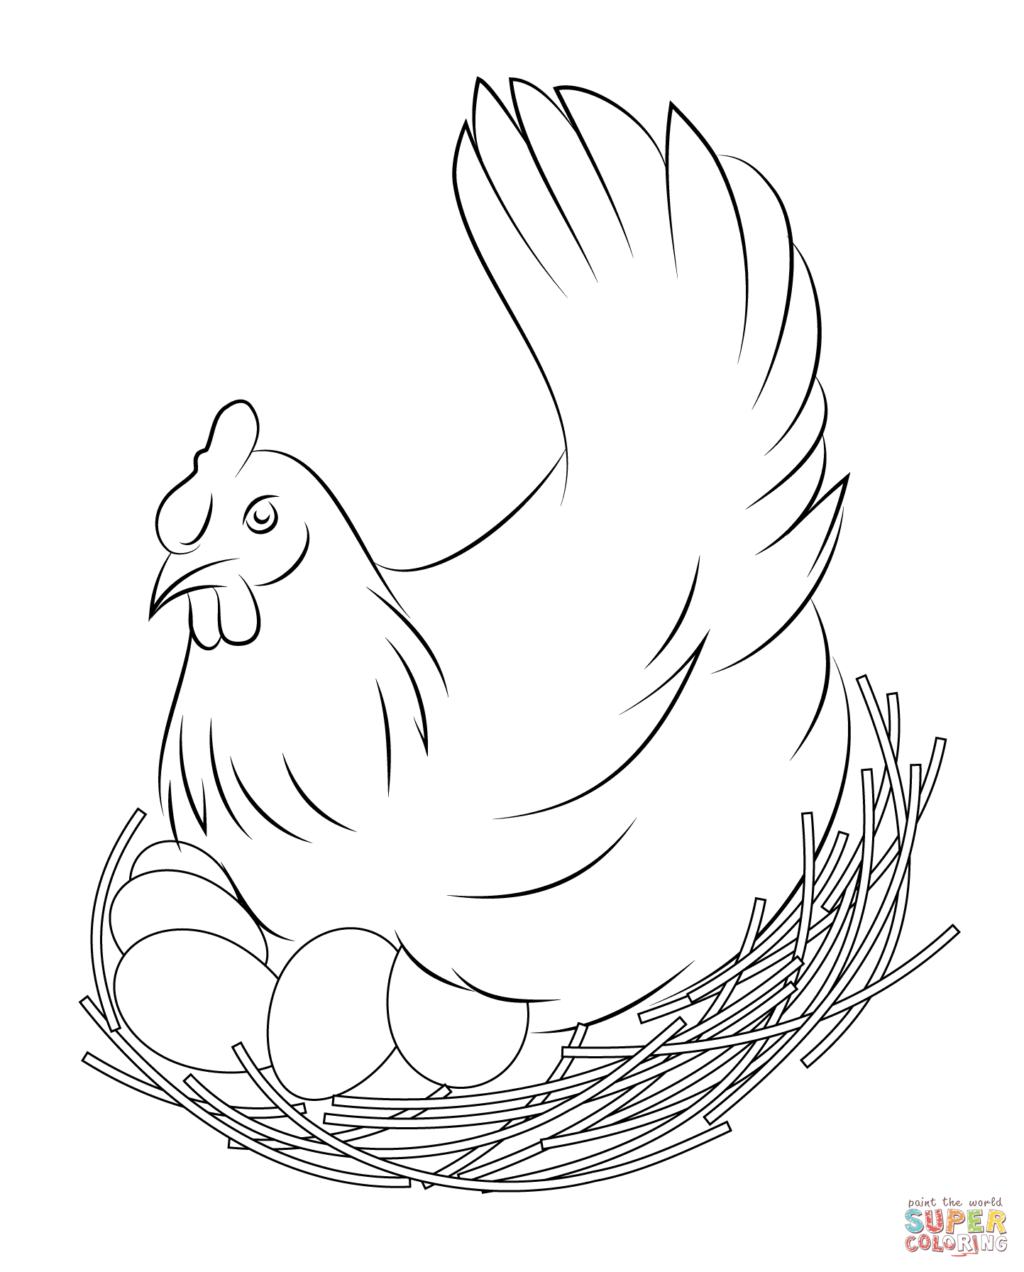 Chicken Free Coloring Pages Chicken Coloring Pages Bird Coloring Pages Chicken Coloring